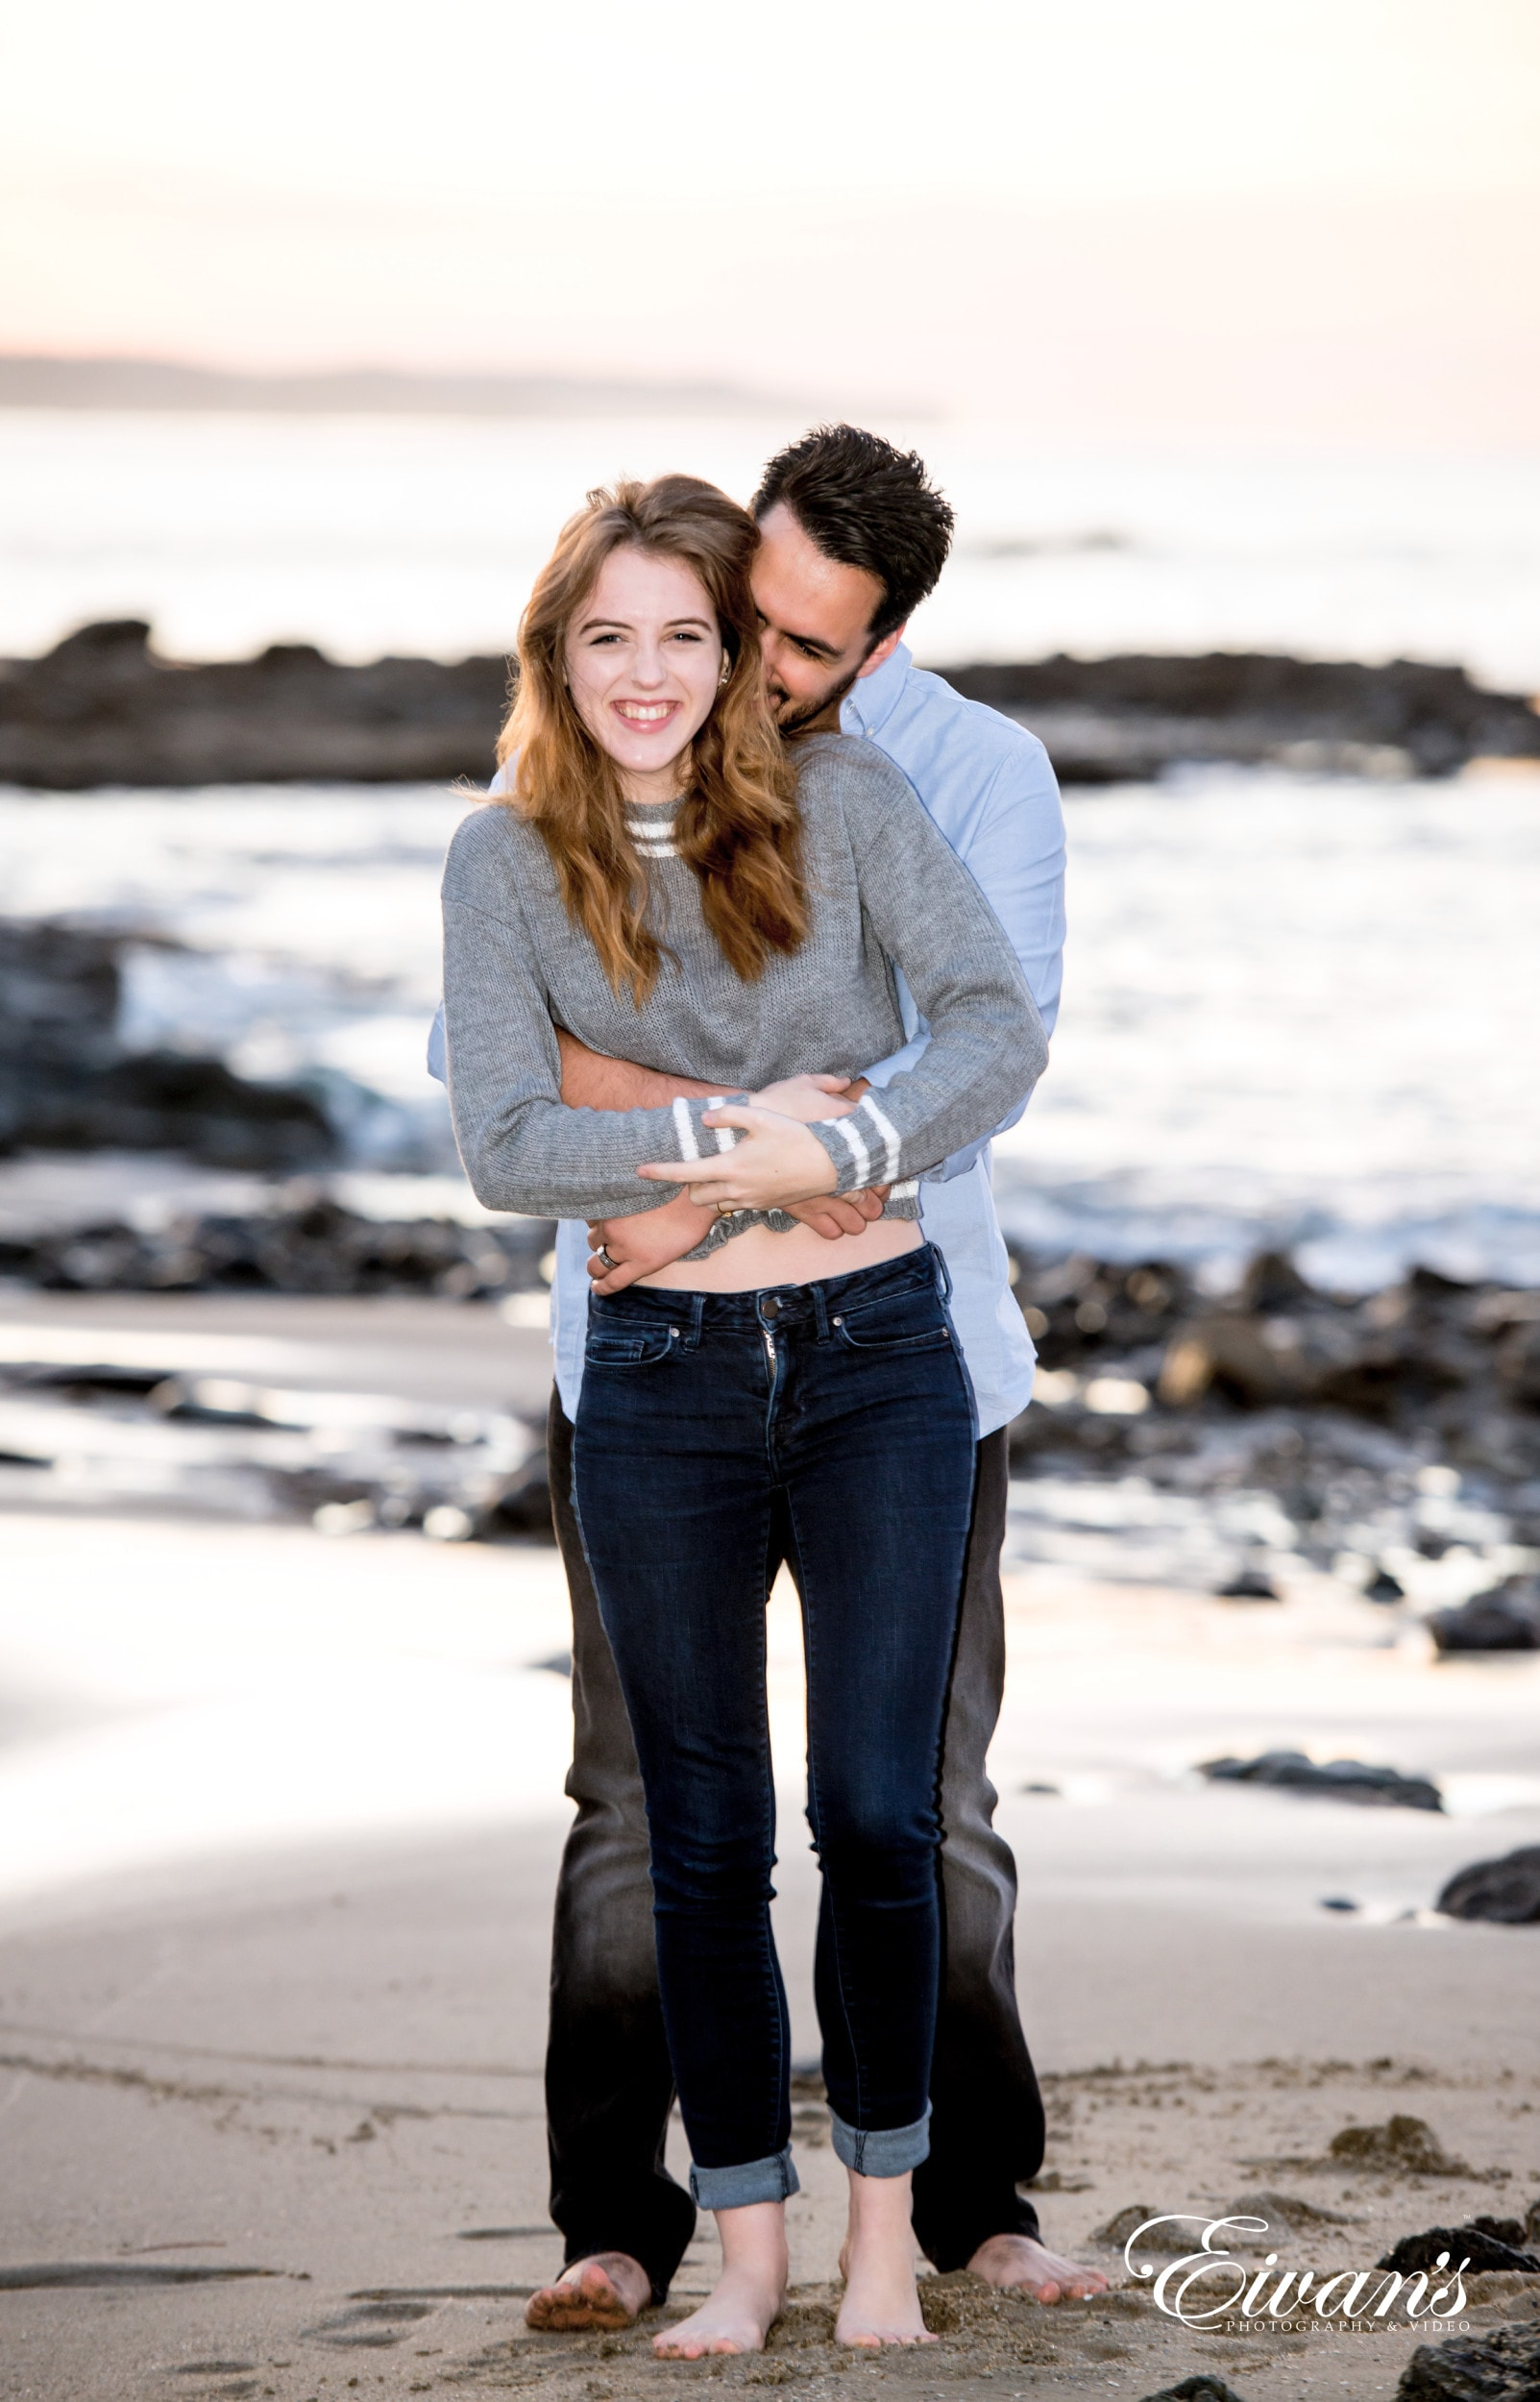 man in gray sweater hugging woman in gray sweater on white sand during daytime